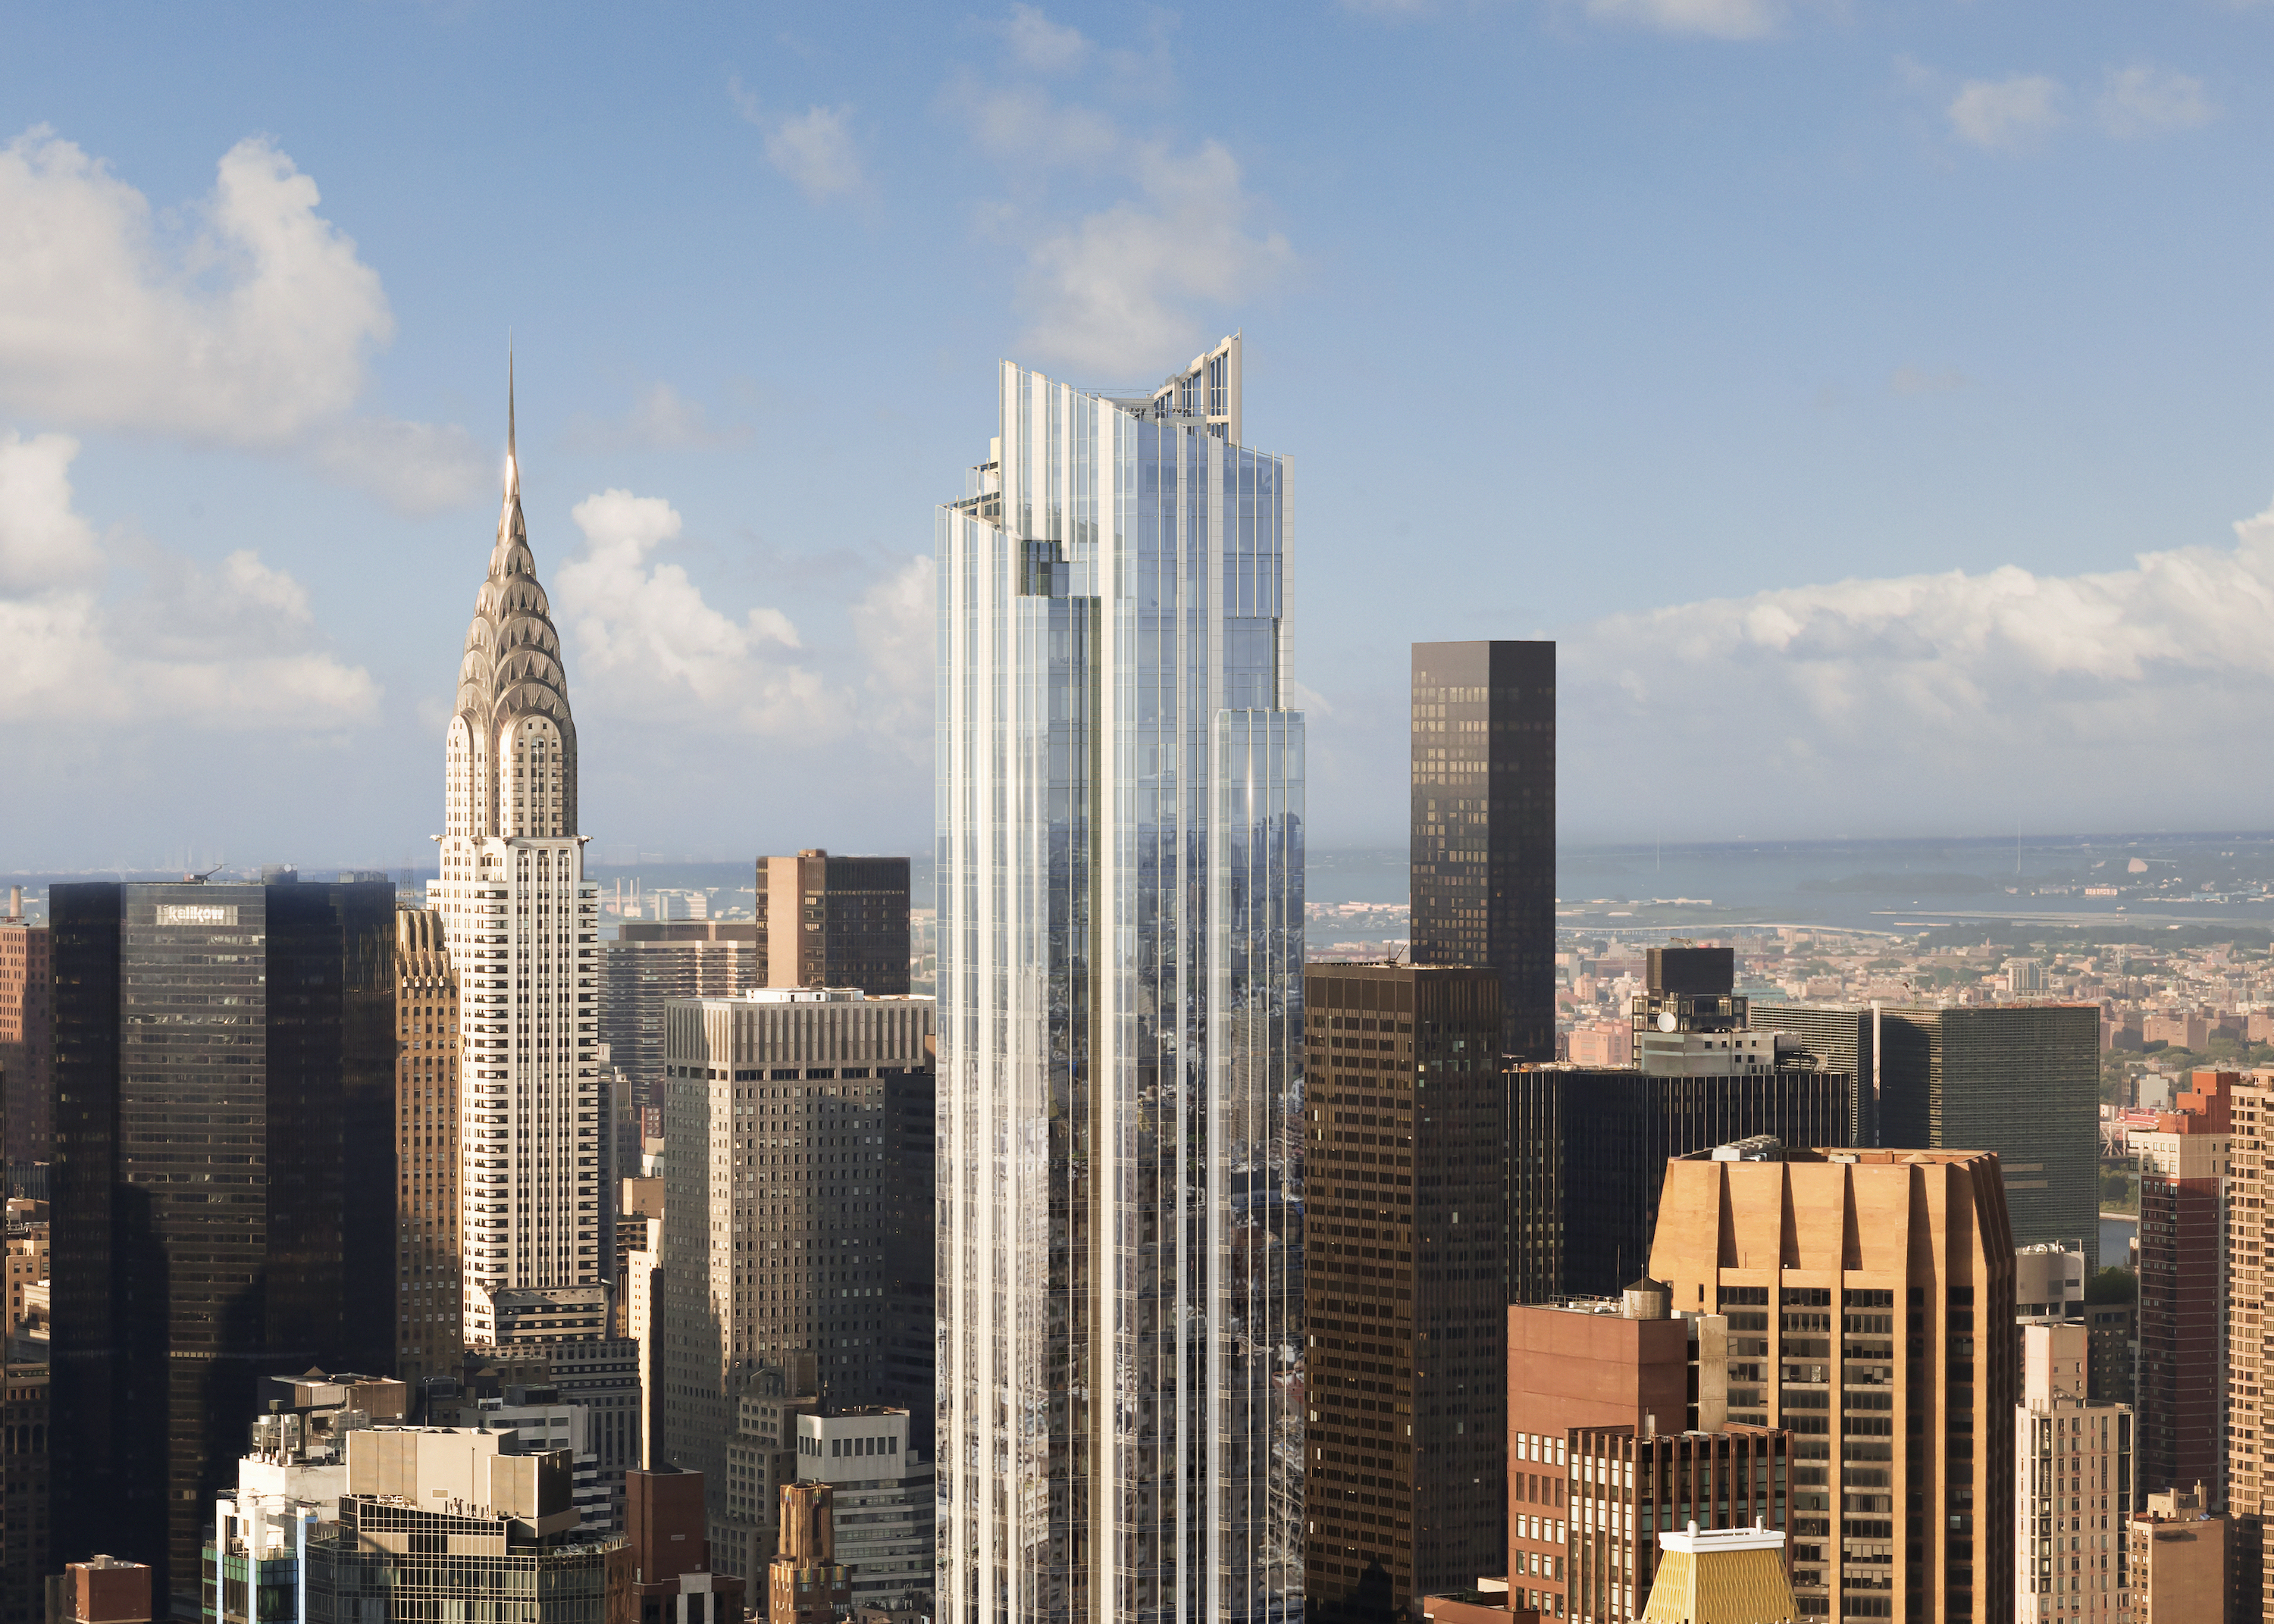 A group of tall skyscrapers including the Chrysler Building.